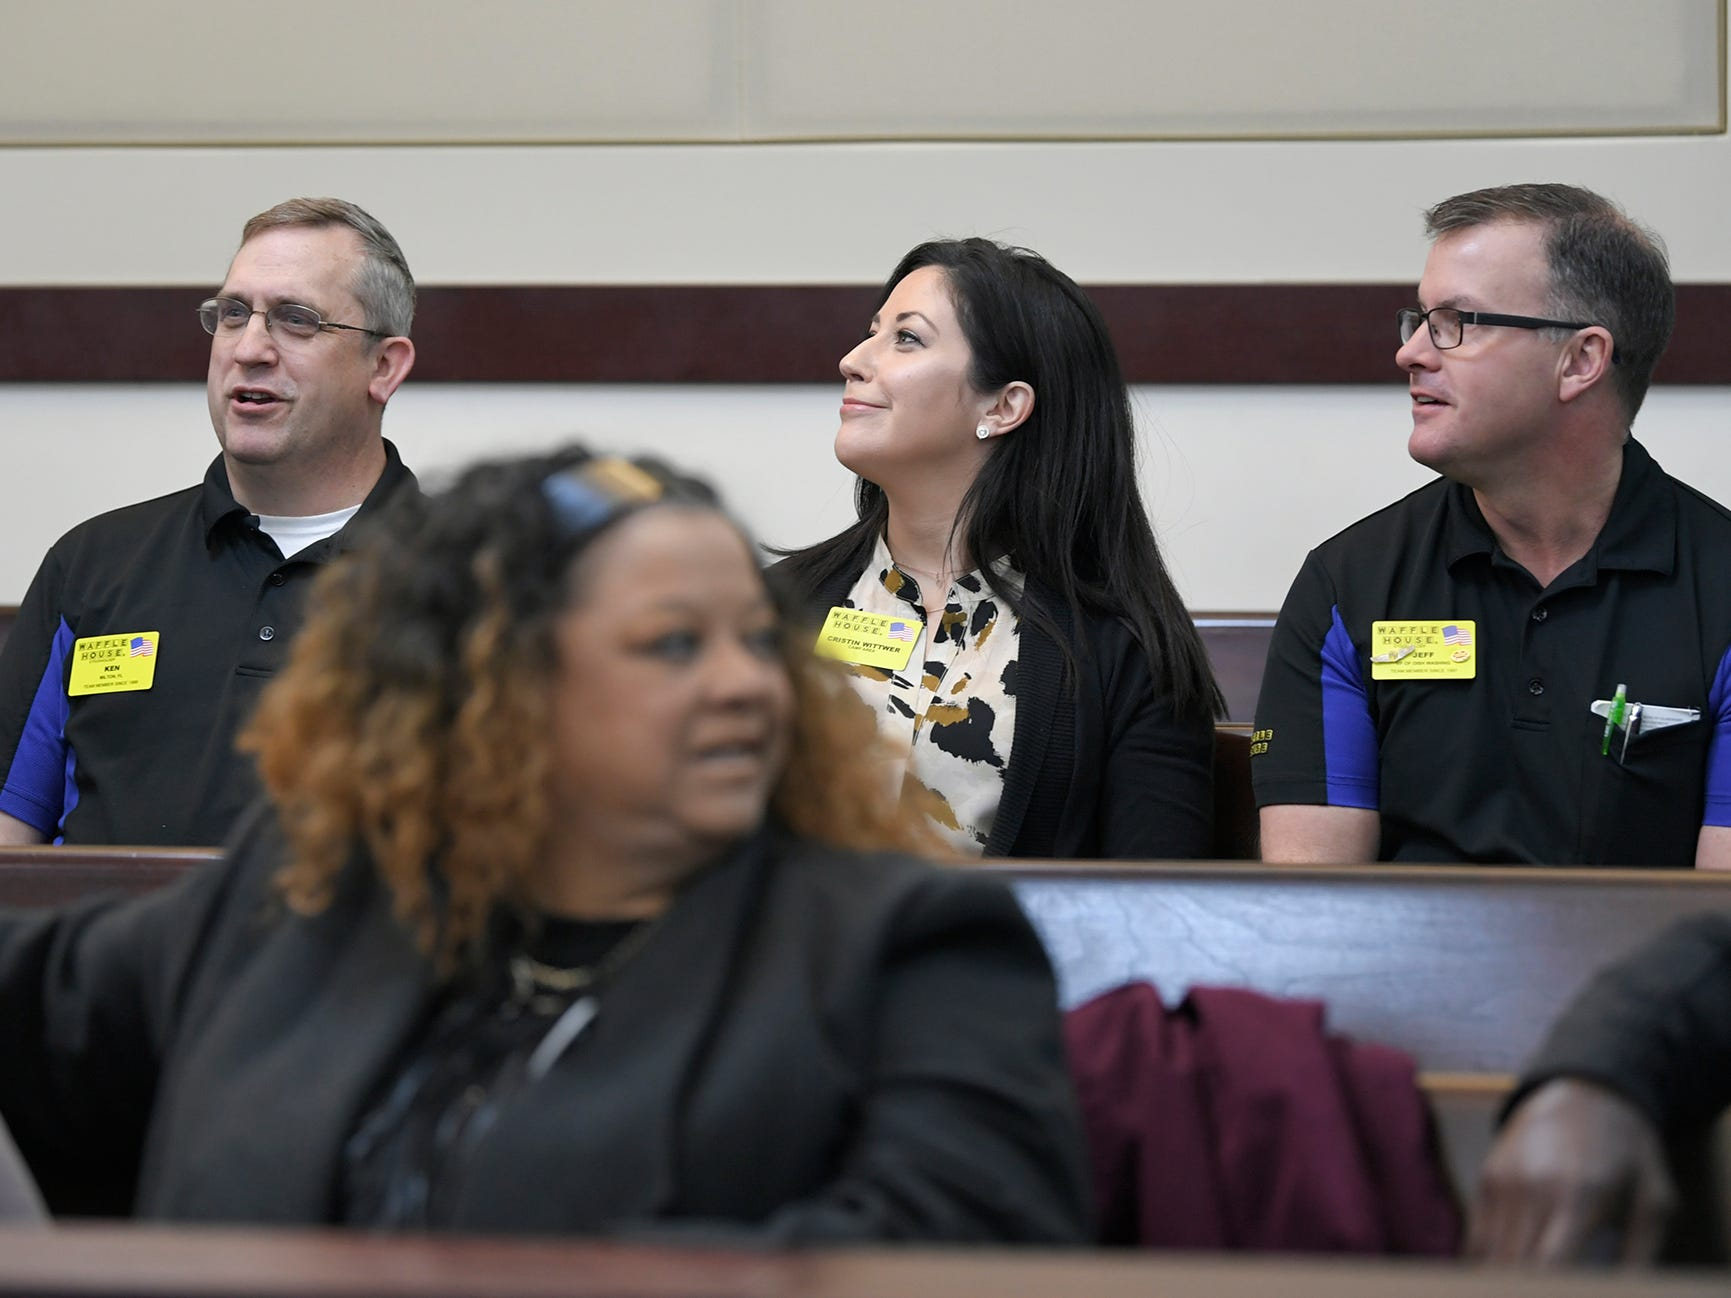 Three Waffle House employees talk with family members of Waffle House victims before a hearing on Waffle House shooting suspect Travis Reinking in Judge Mark Fishburn's courtroom in Nashville on Wednesday, Feb. 13, 2019.